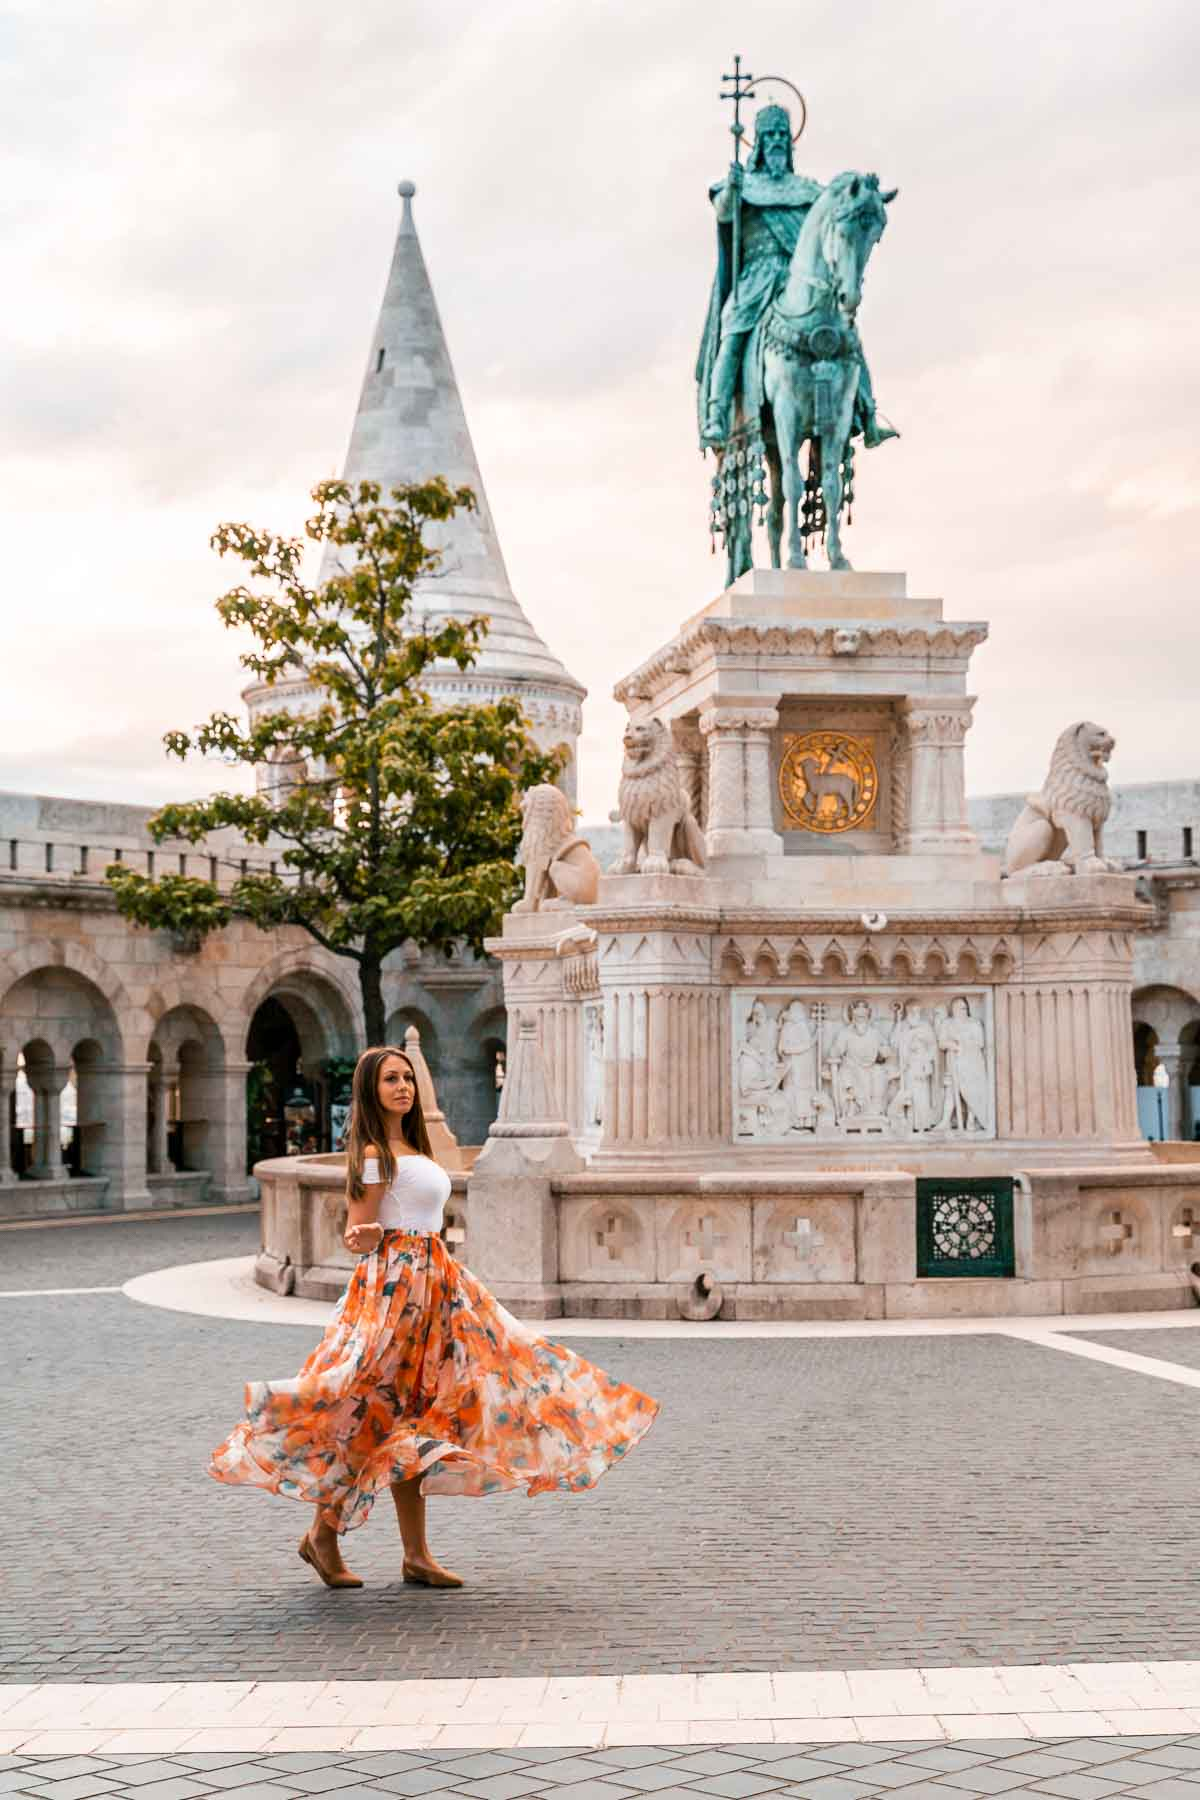 Girl in an orange skirt twirling in front of a statue at Fisherman's Bastion in Budapest